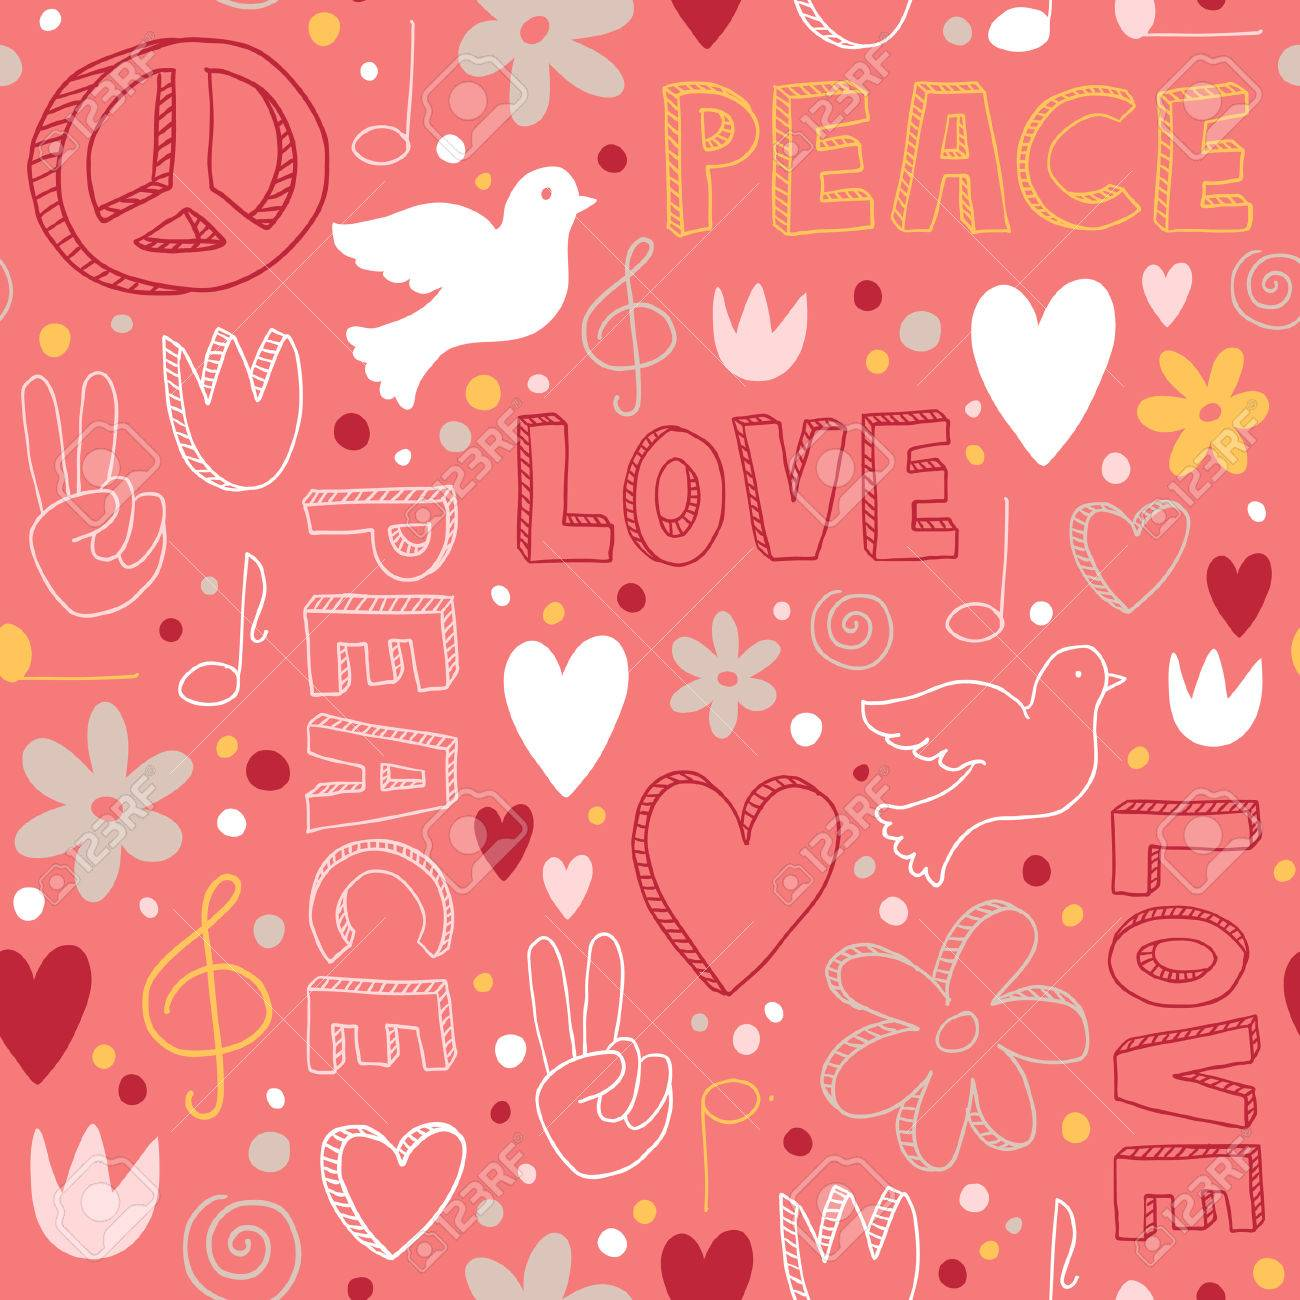 Cute hand drawn seamless pattern with symbols of peace doves cute hand drawn seamless pattern with symbols of peace doves hearts peace buycottarizona Images